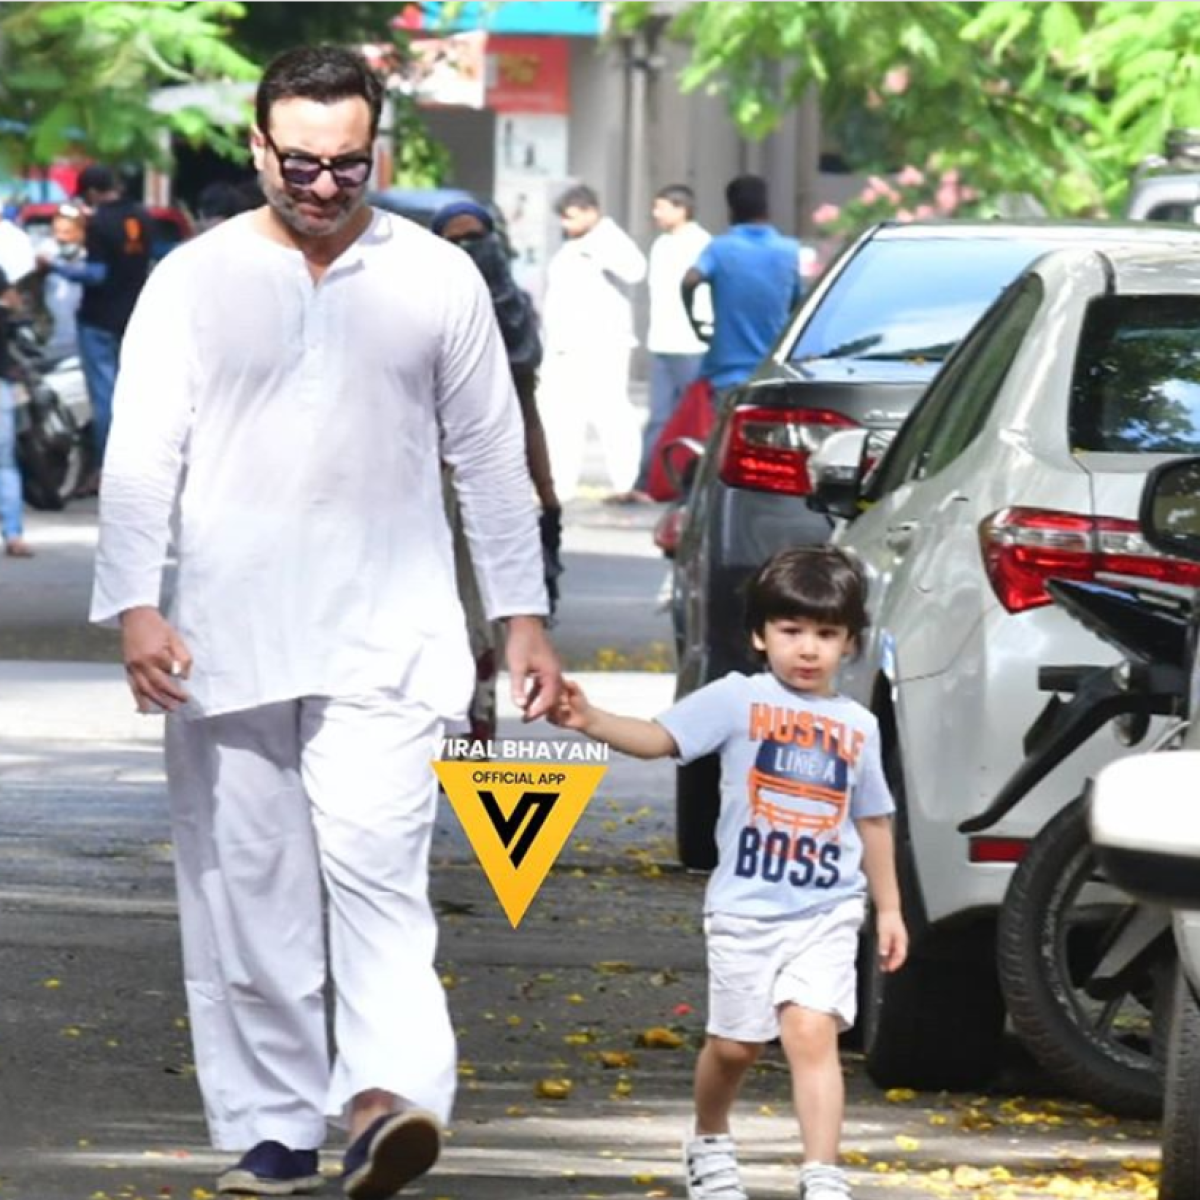 Immune to coronavirus? Saif Ali Khan and son Taimur spotted in the streets without masks amid COVID-19 threat